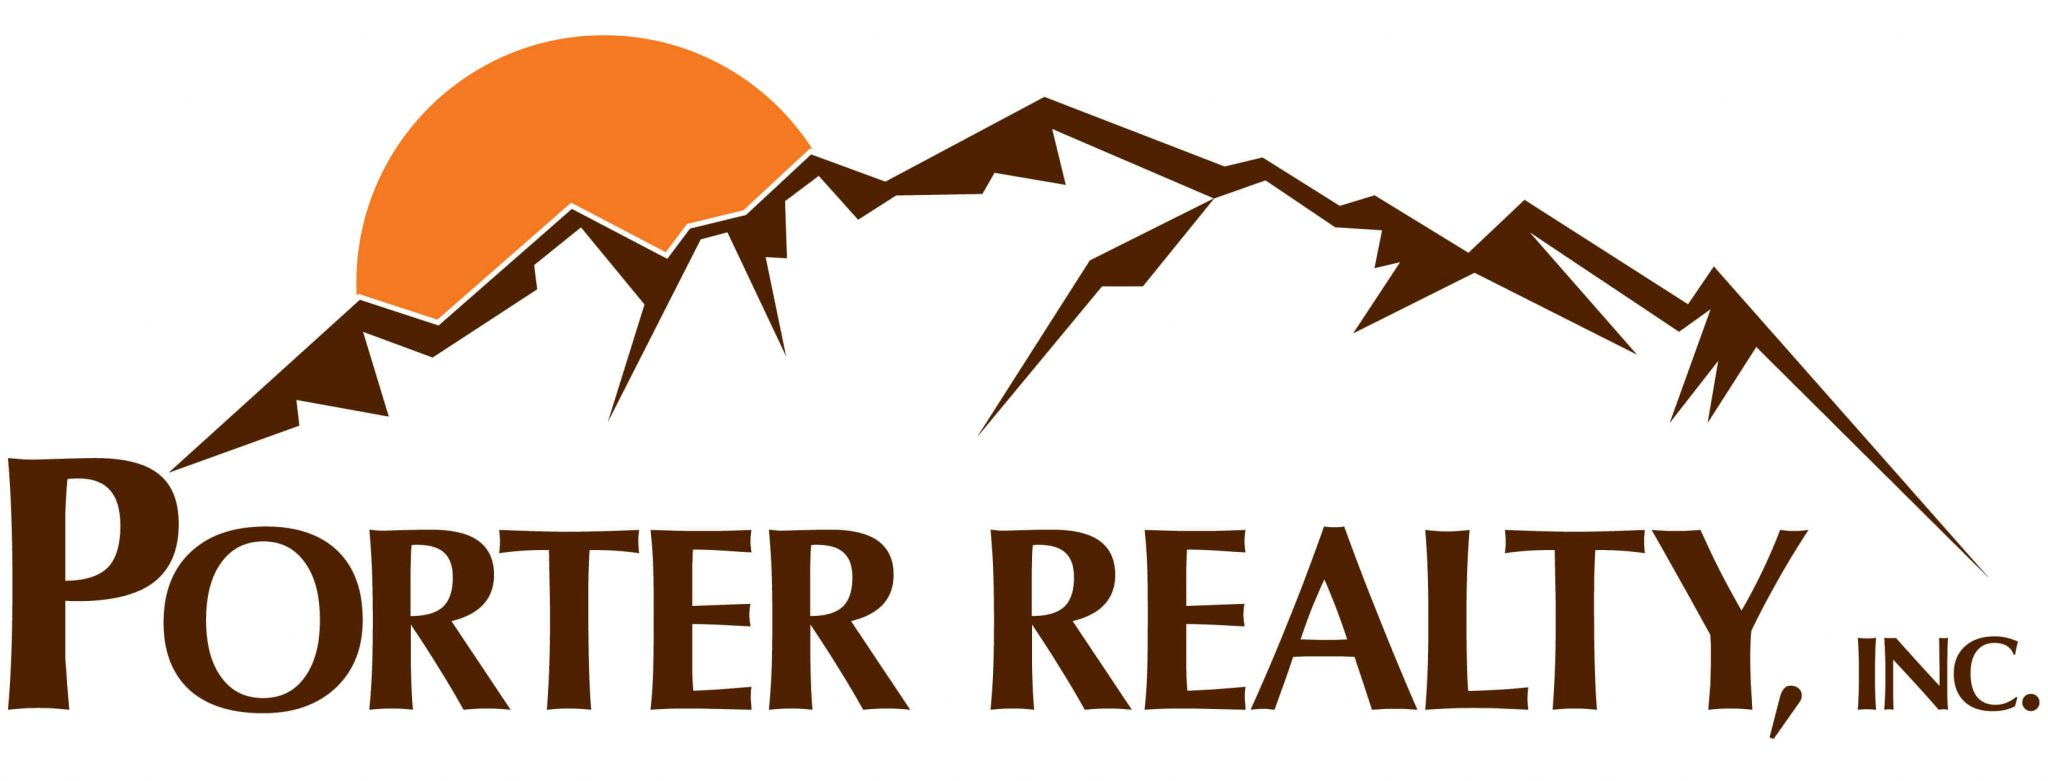 Porter Realty Chooses Jade Wi-Fi For Internet